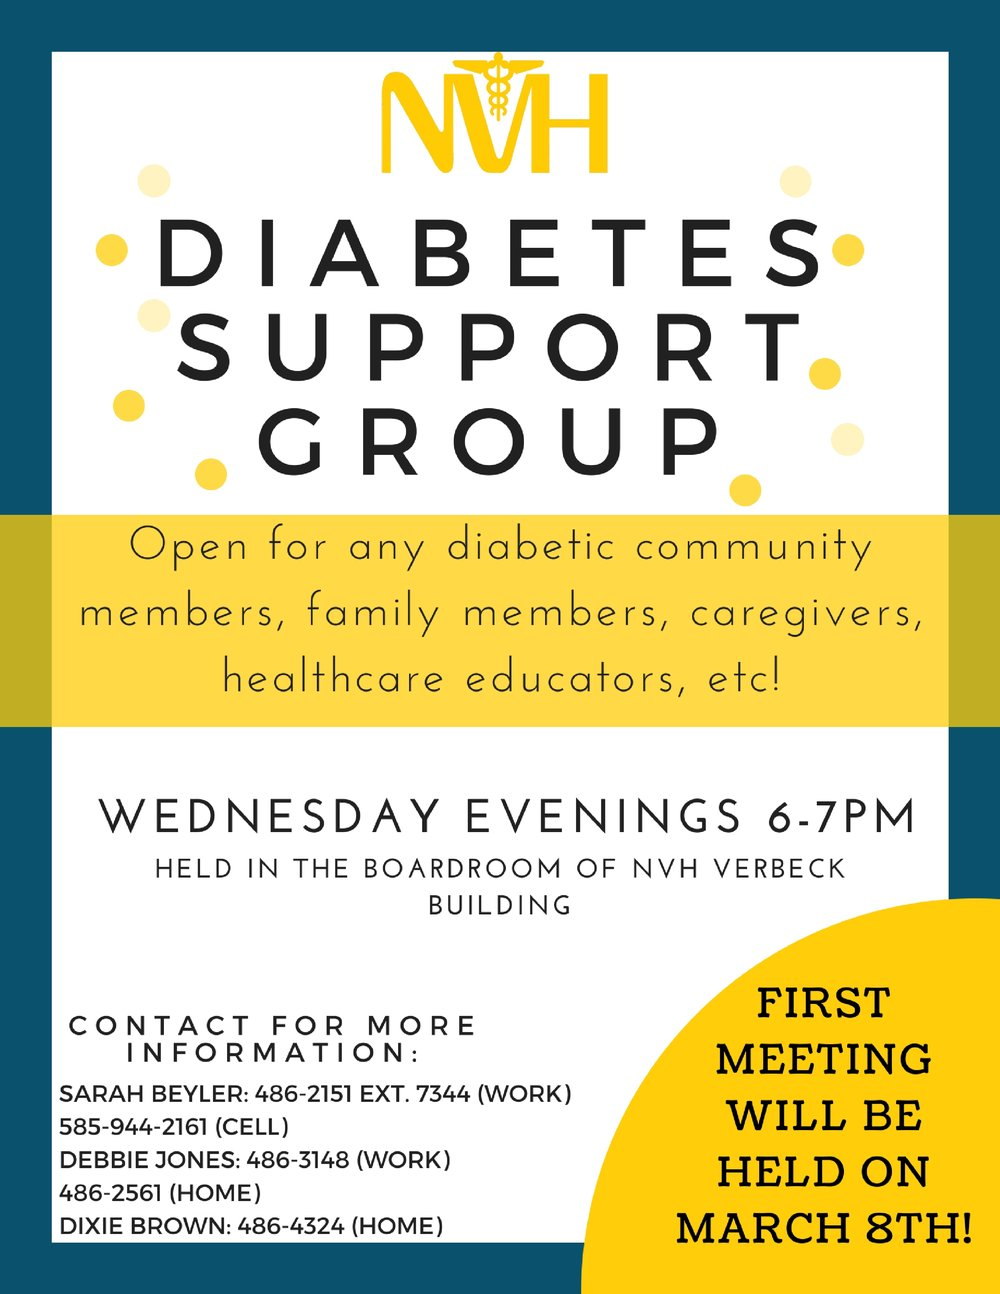 Diabetes Support Group Flyer.jpg